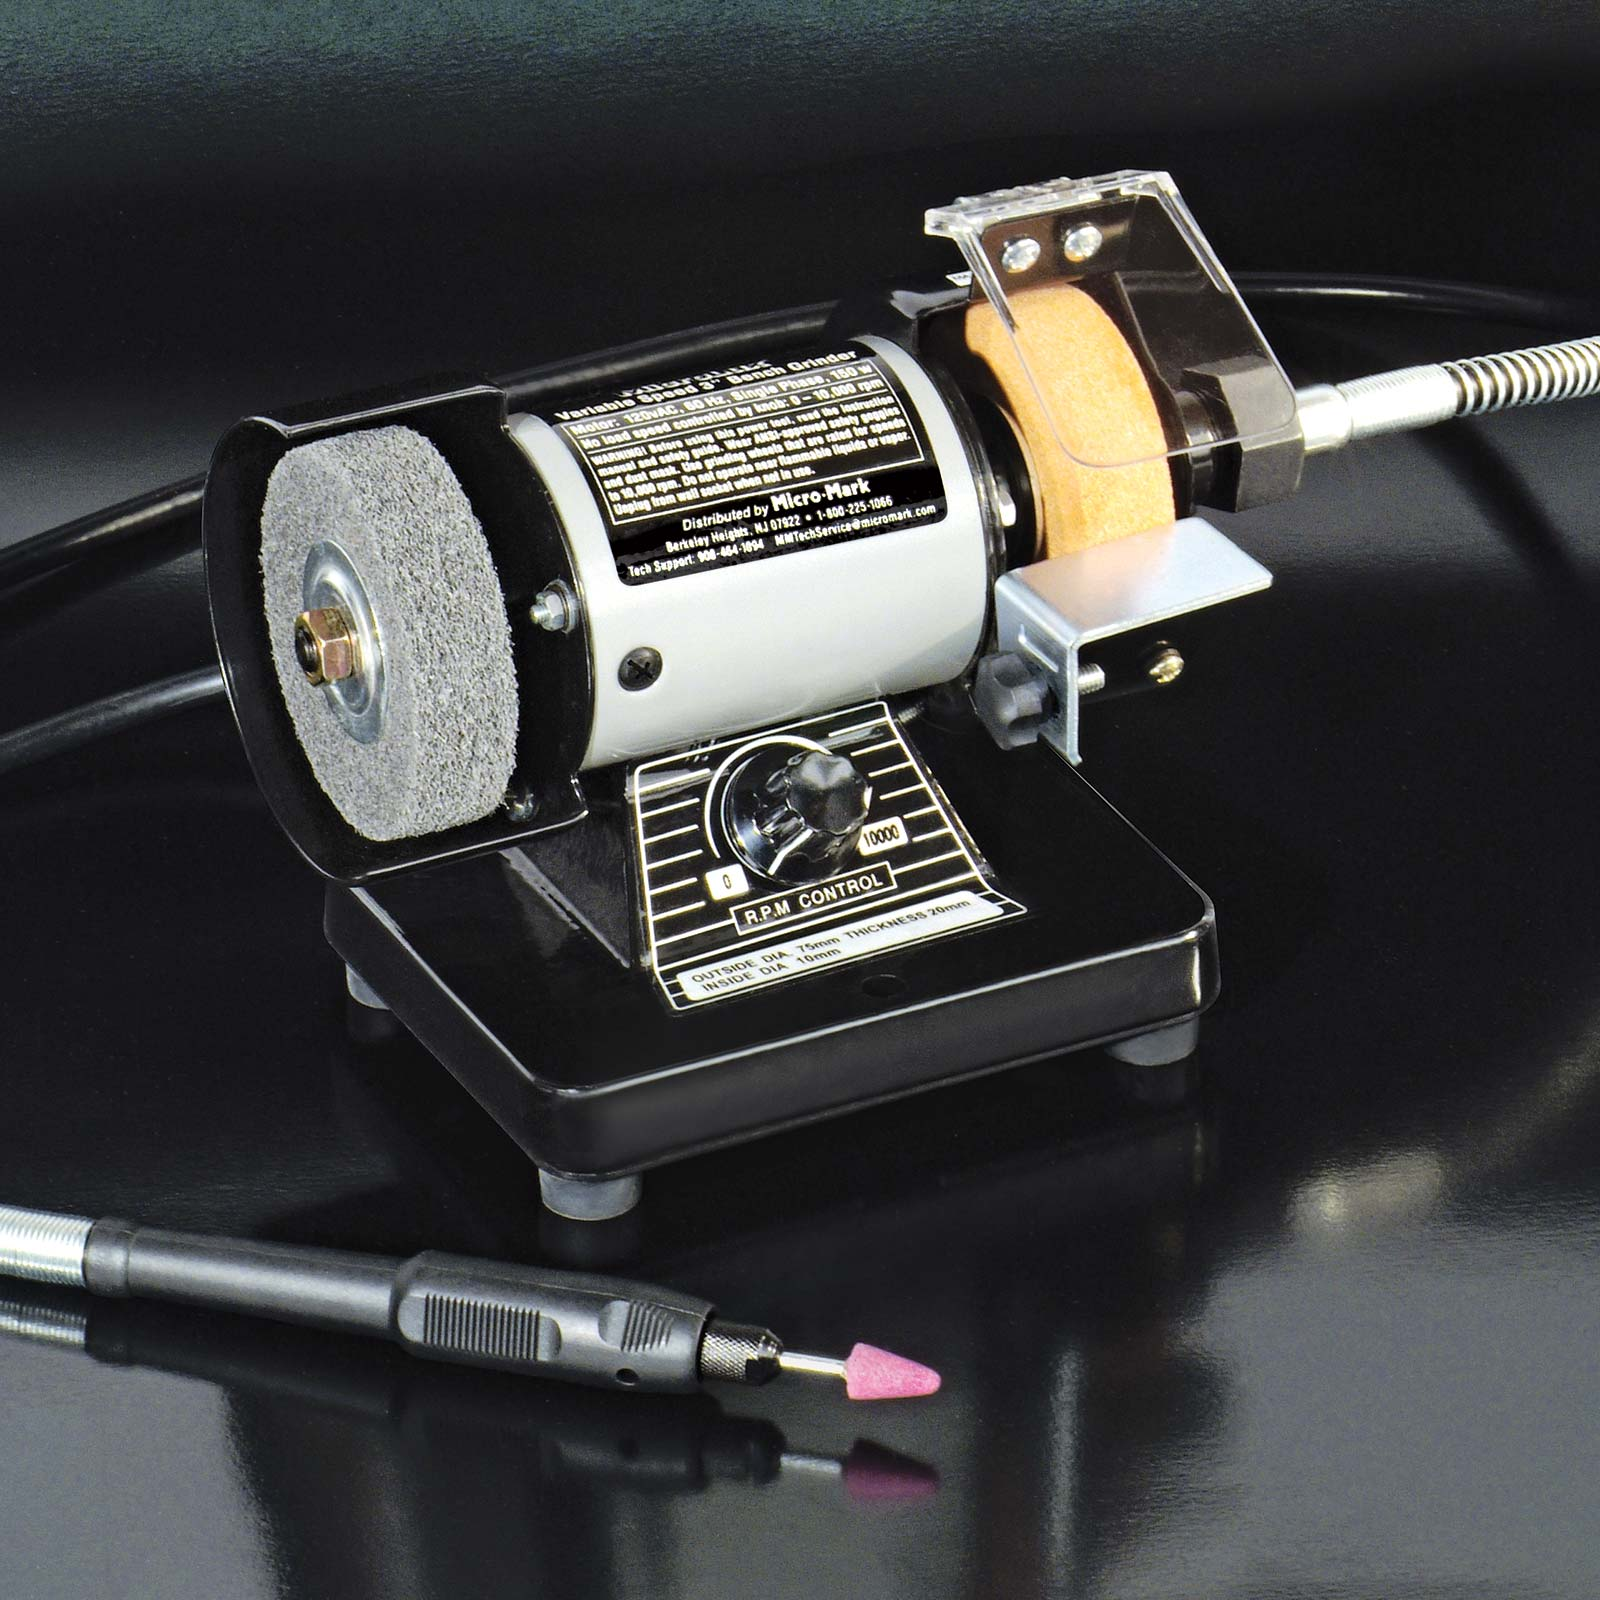 Miniature Bench Grinder With Flex Shaft Attachment